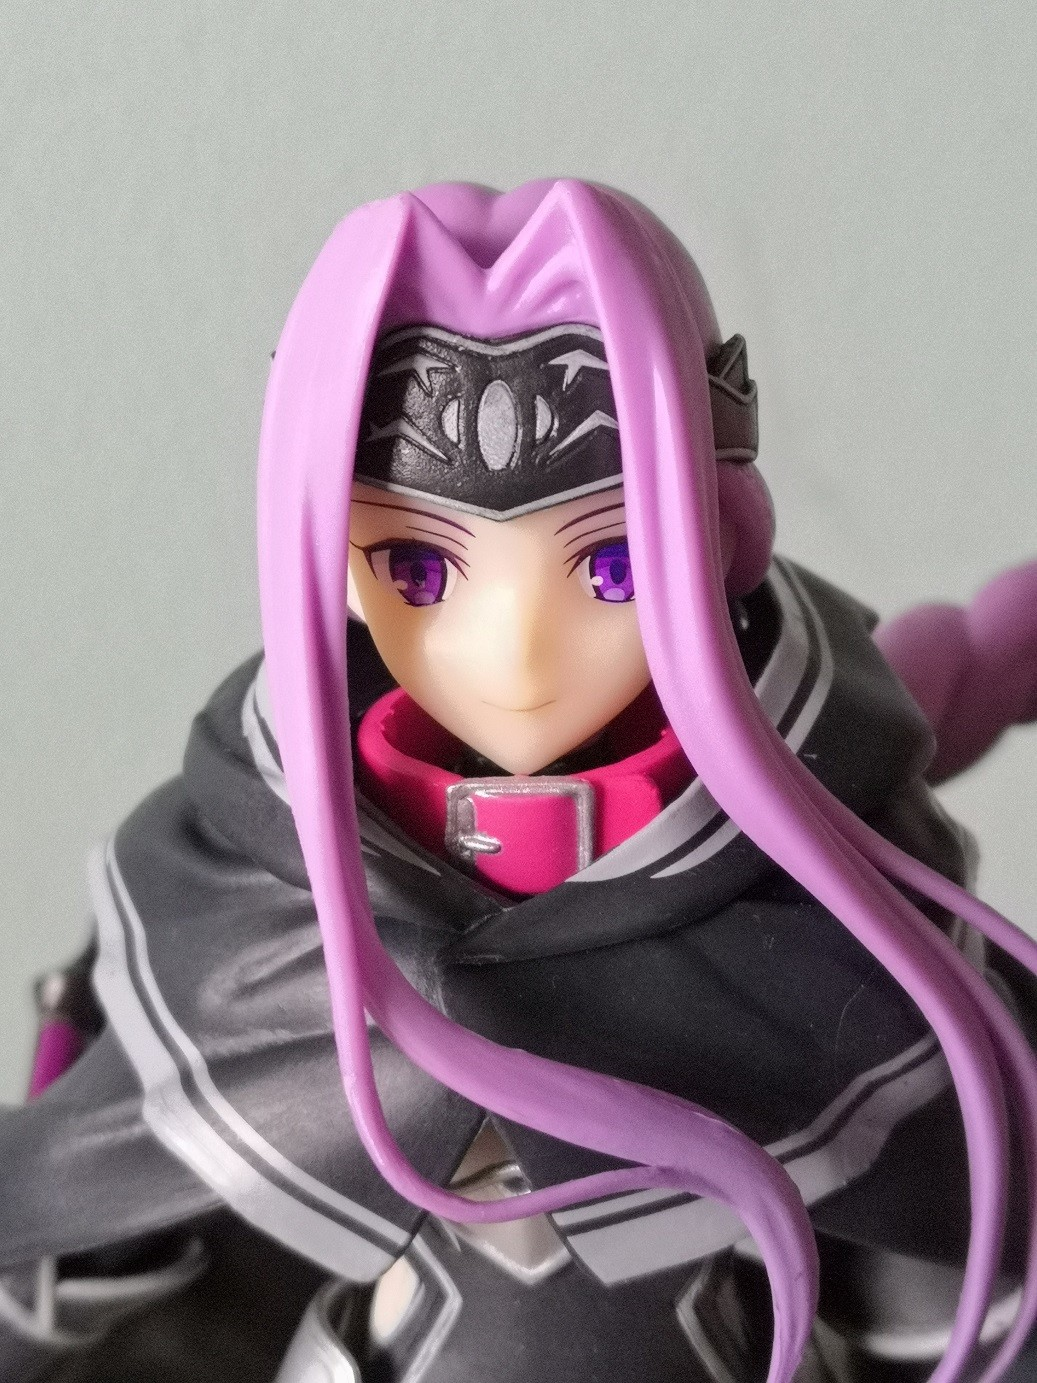 https://static.myfigurecollection.net/upload/pictures/2021/07/17/2787215.jpeg